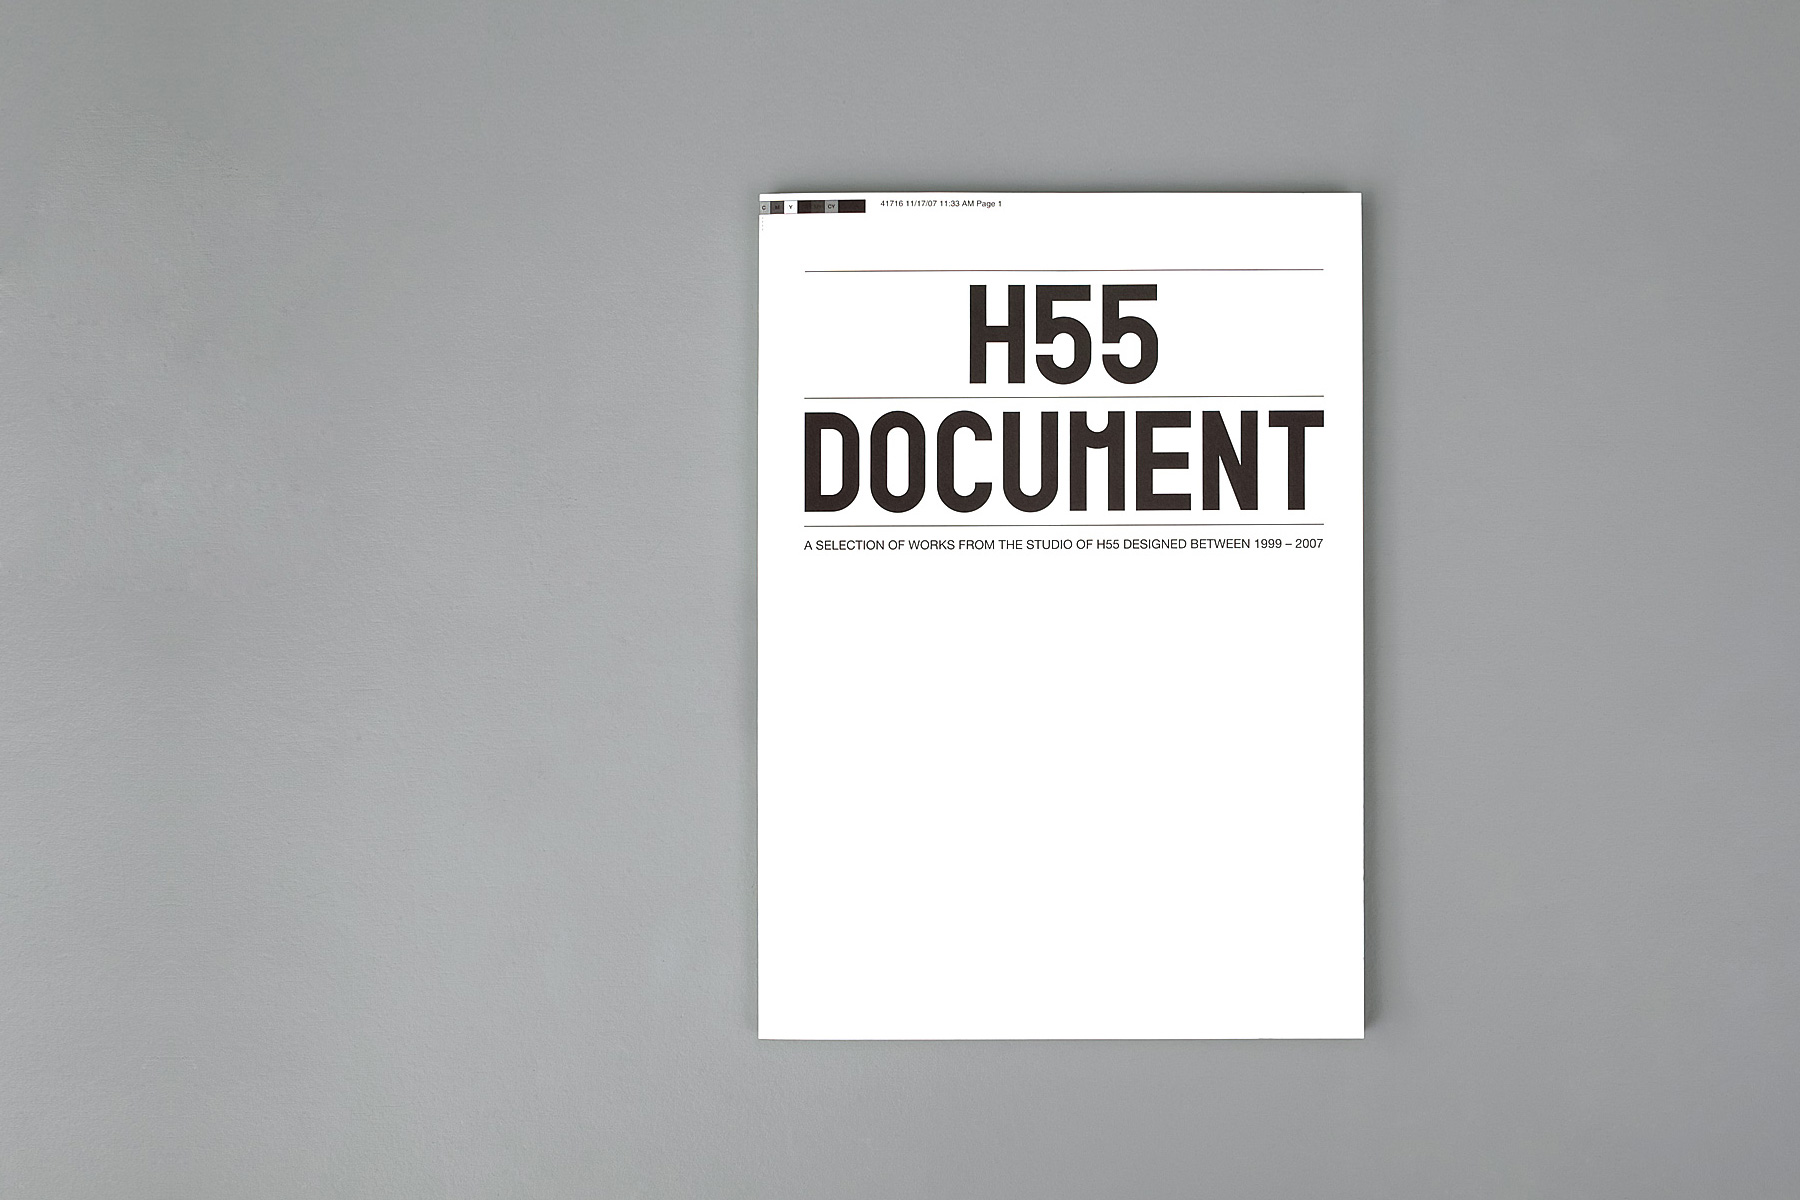 H55-Document-1